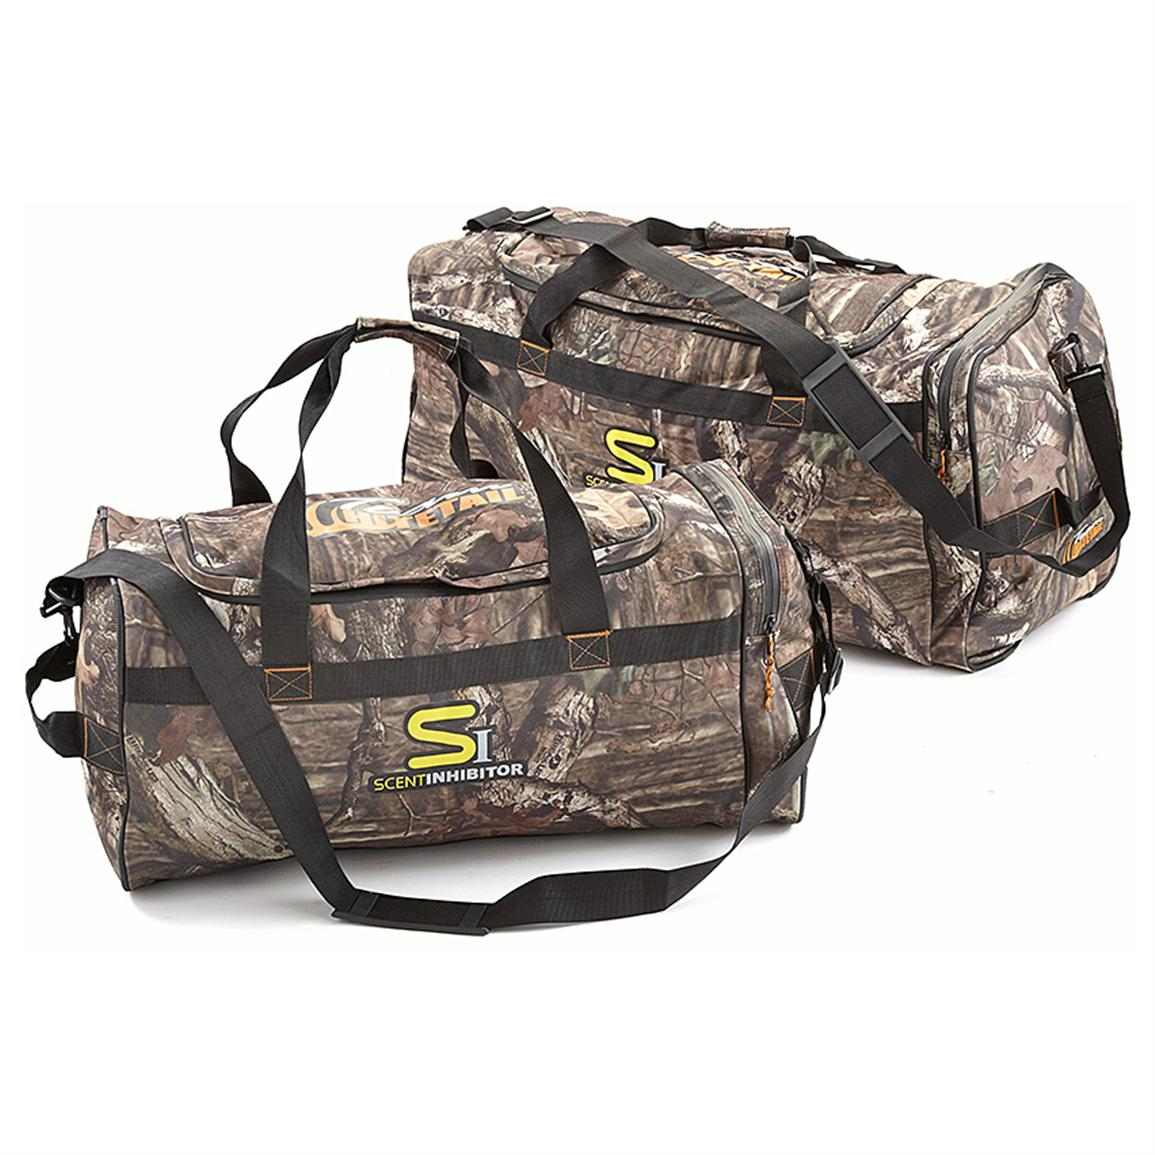 Team Whitetail™ Scent Inhibitor Duffel Bags